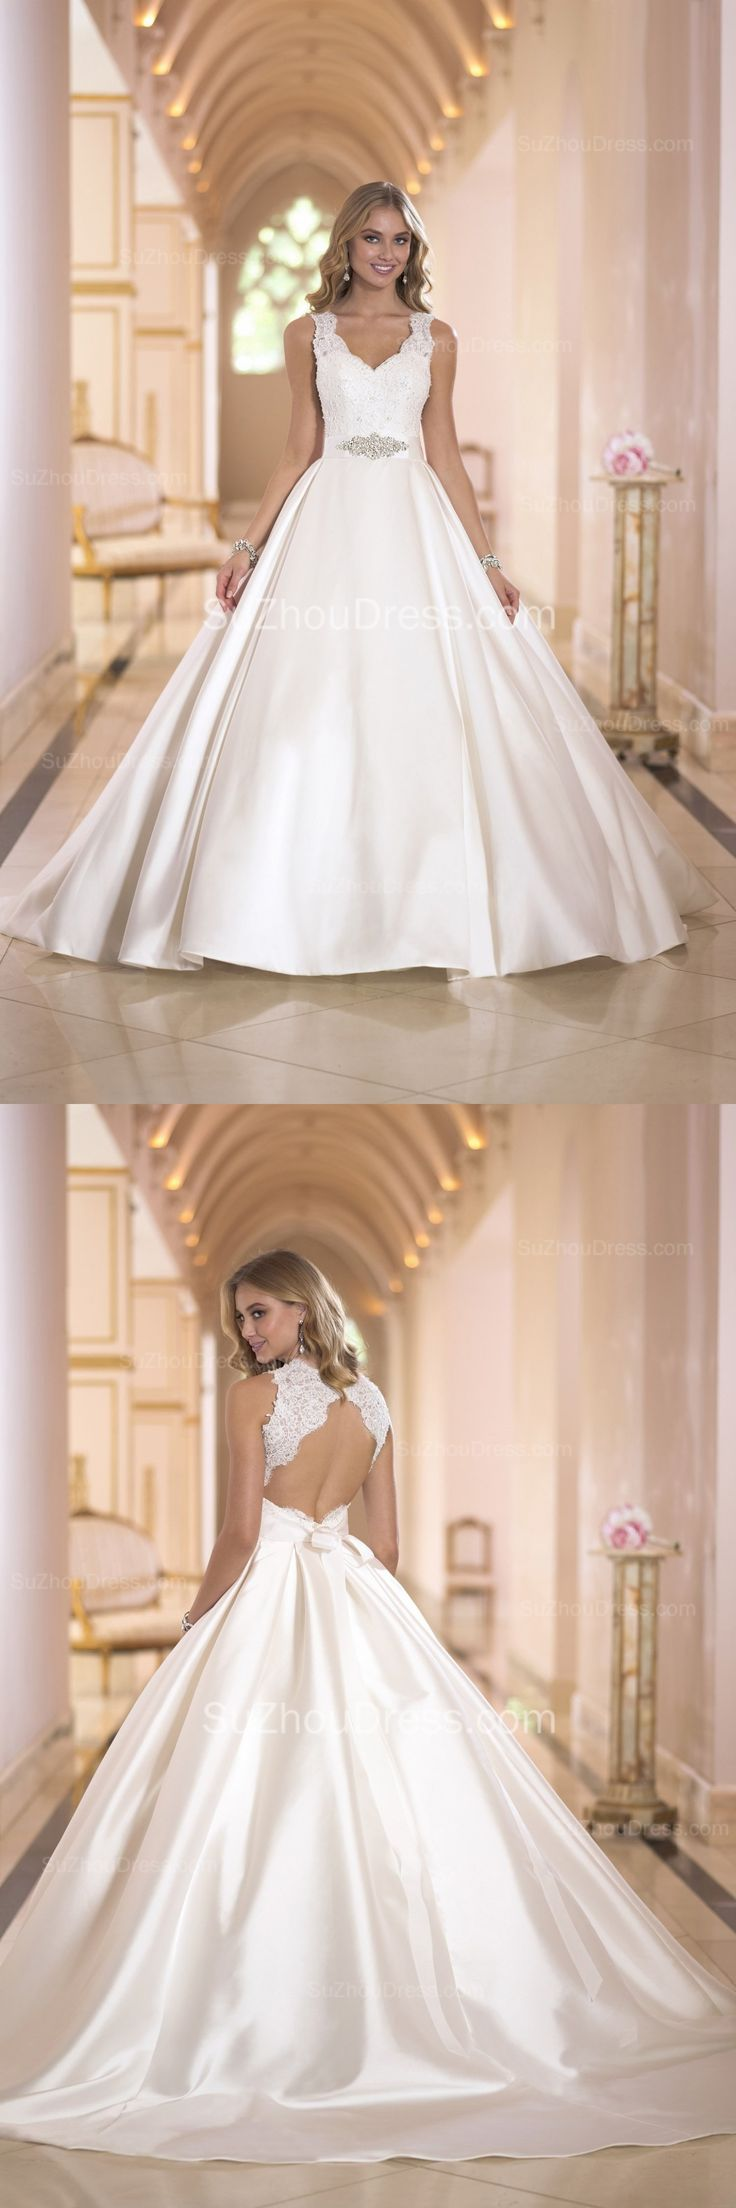 Satin Bridal Dresses V Neck Appliques Beading Sash Elegant Ball Gown with Bow Court Train Wedding Gowns